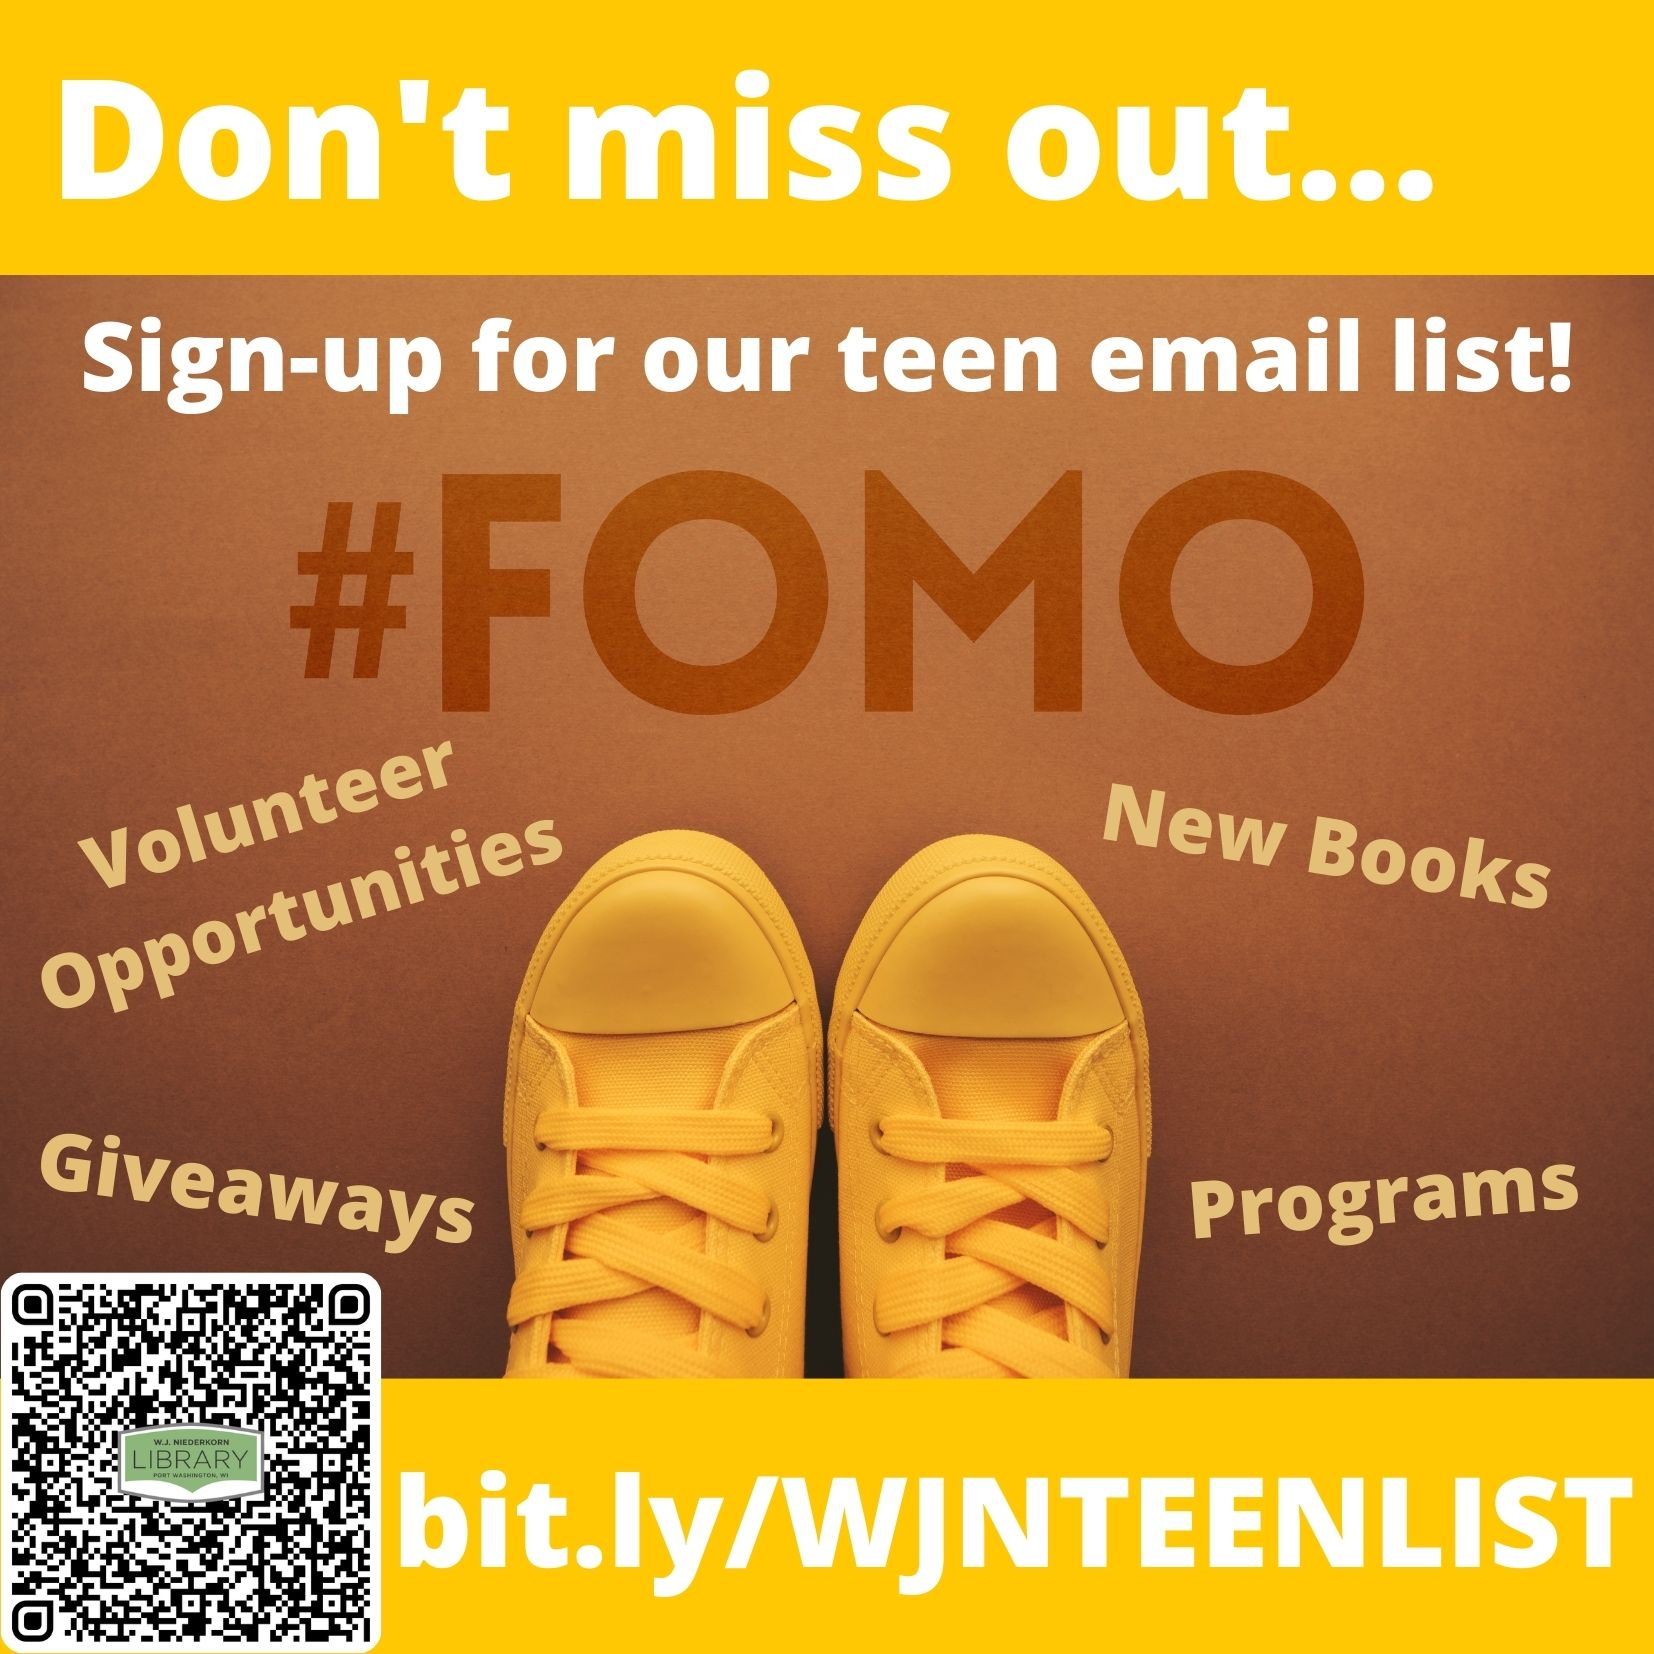 yellow converse shoes with text saying #FOMO. Don't miss out. Sign-up for our teen email list! bit.ly/WJNTEENLIST